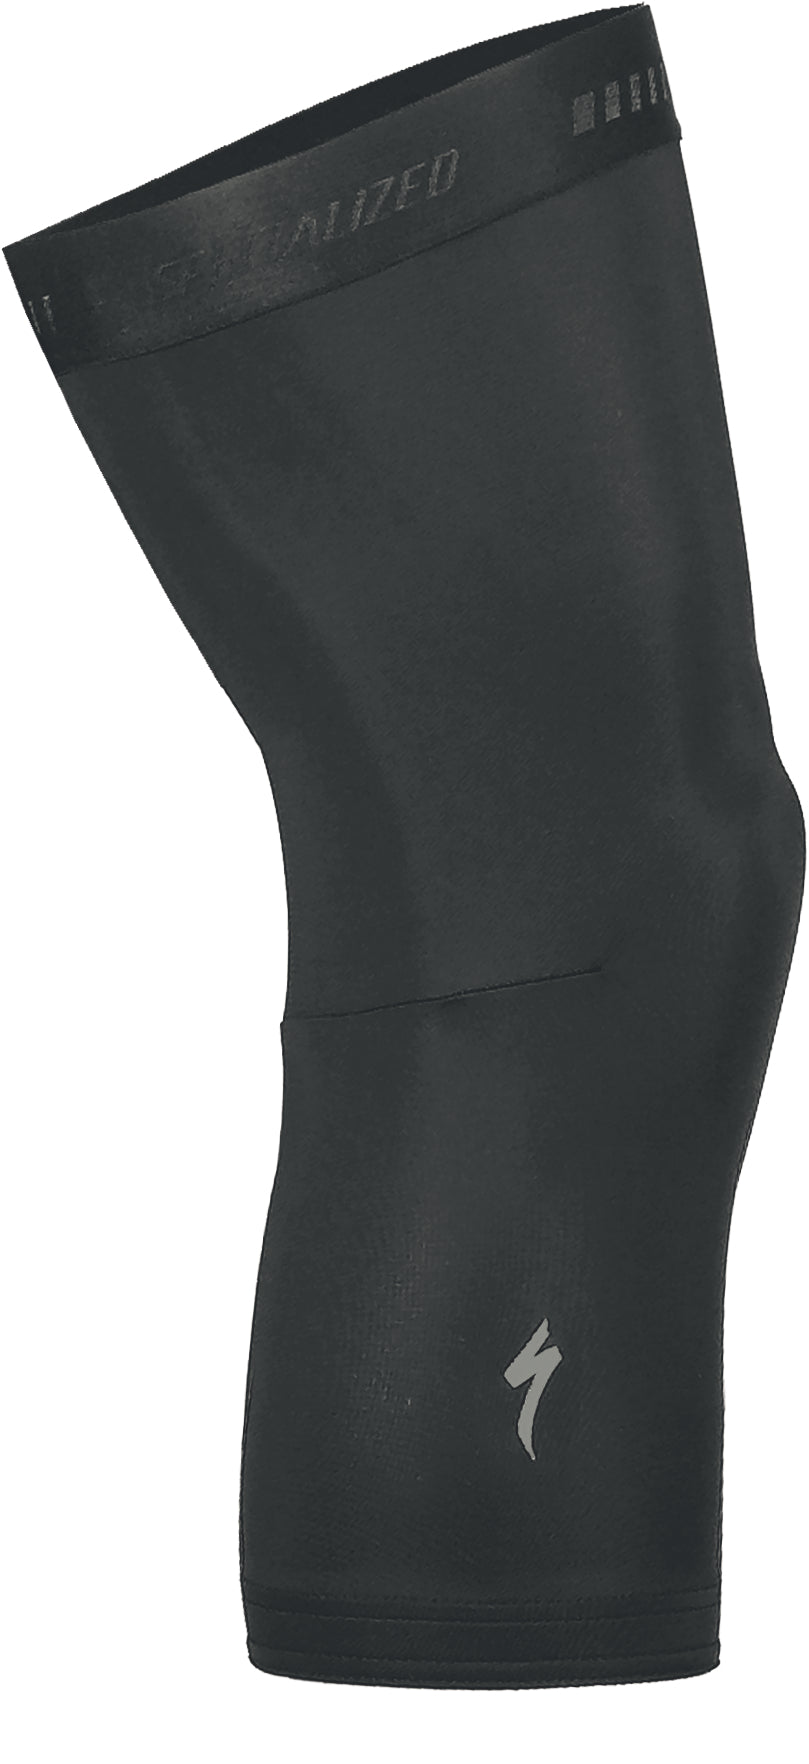 Knee Warmer Fleece Black S